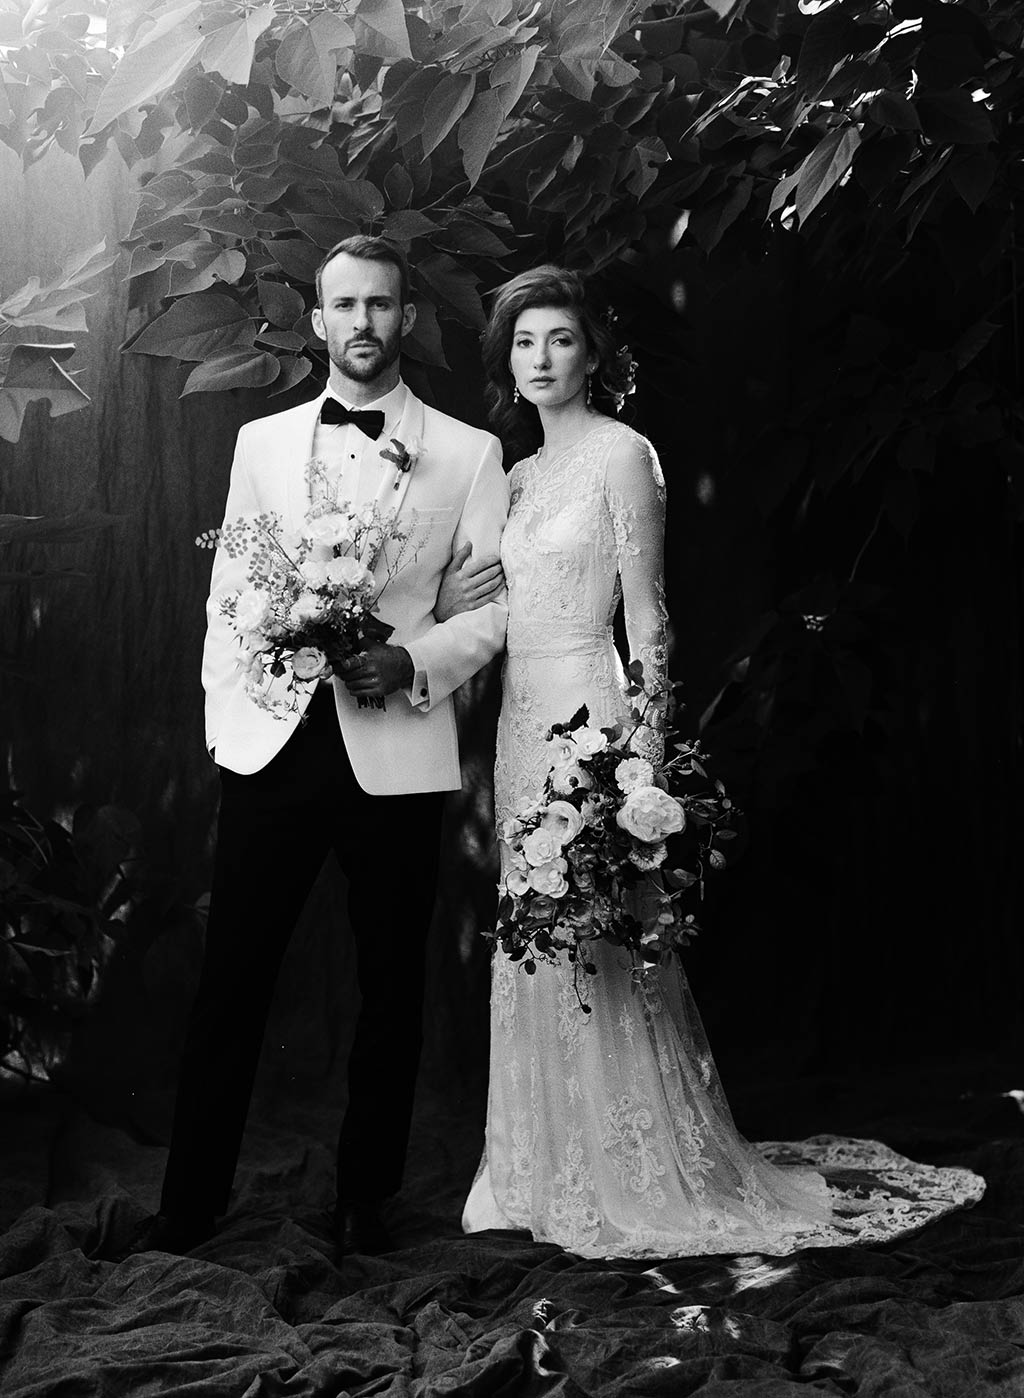 Classing Black and White Wedding Picture